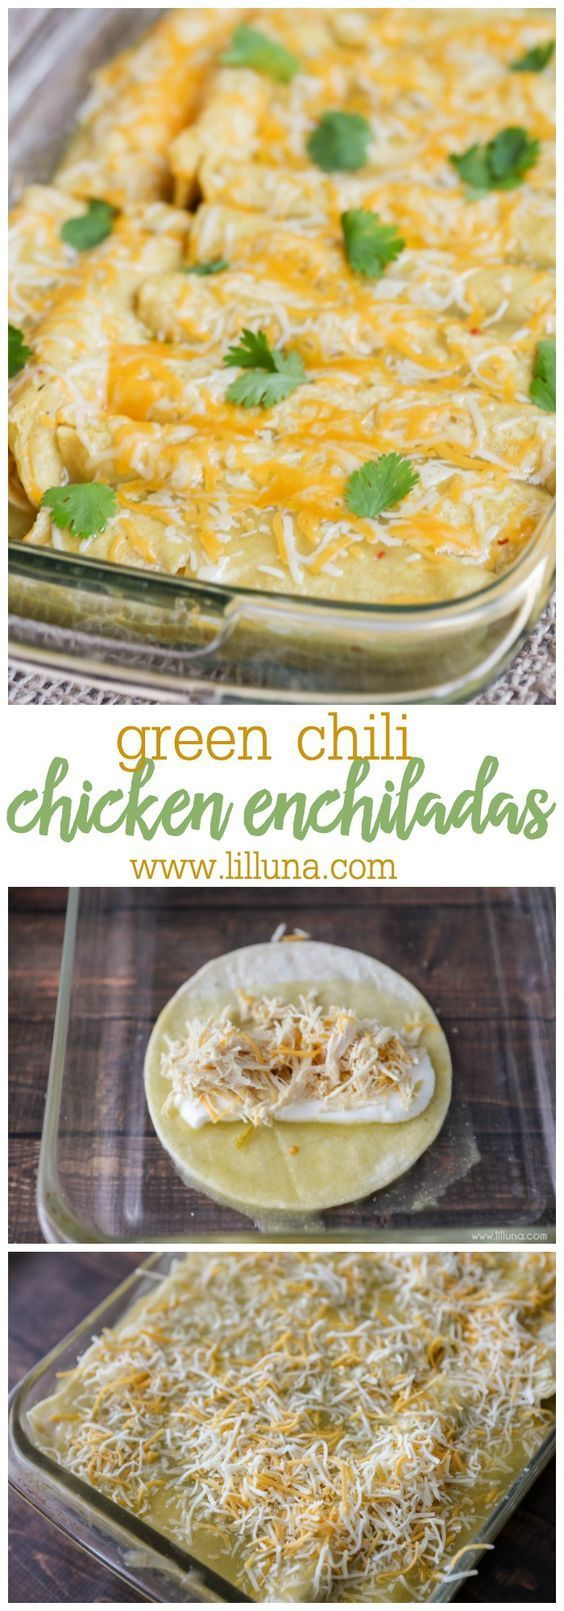 One Of Our Favorite Mexican Dishes Green Chile Chicken Enchiladas Recipe Corn Tortillas Stuffed With Chicken Cheese Las South Of The Border Enchilada Recipes Mexican Food Recipes Food Recipes